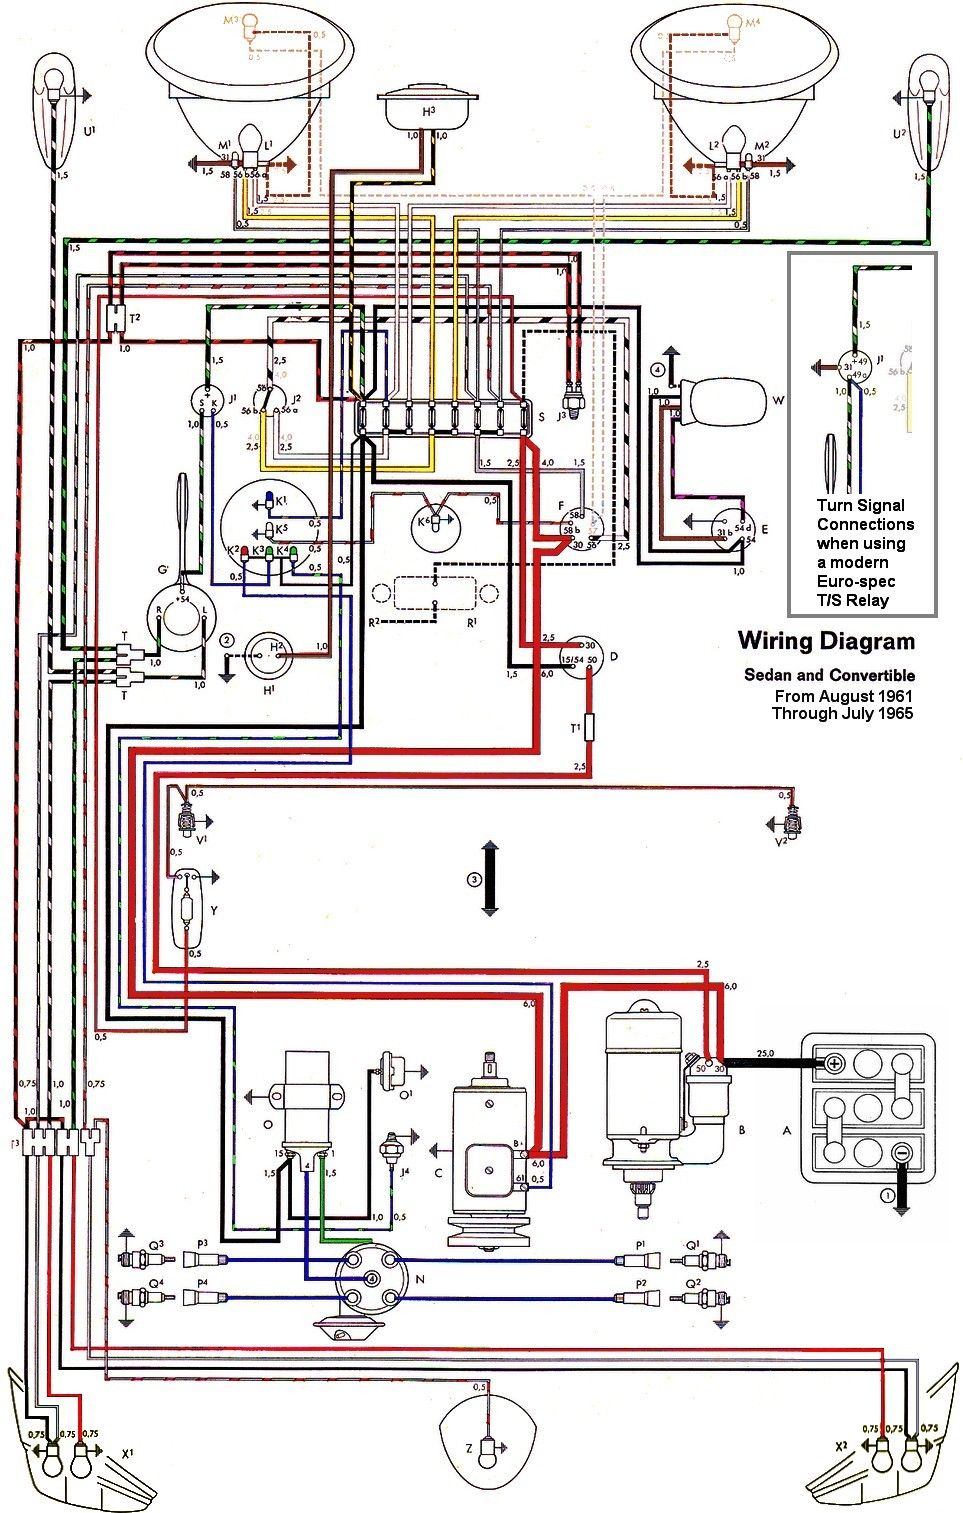 wiring diagram vw beetle sedan and convertible 1961 1965 vw rh pinterest  com volkswagen beetle diagram vw bug wiring diagram